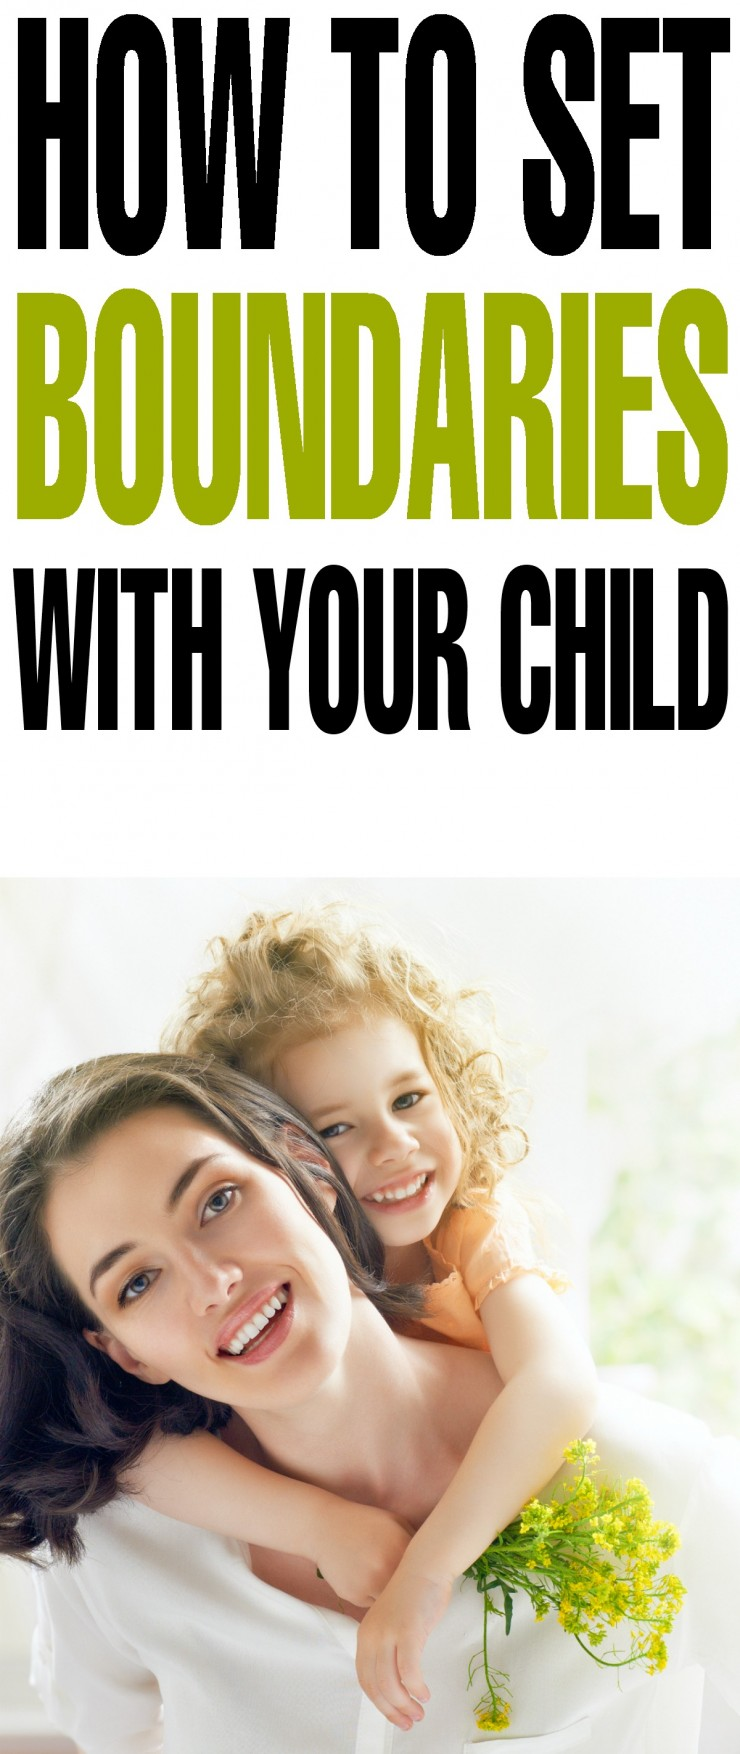 How to Set Boundaries with Your Child